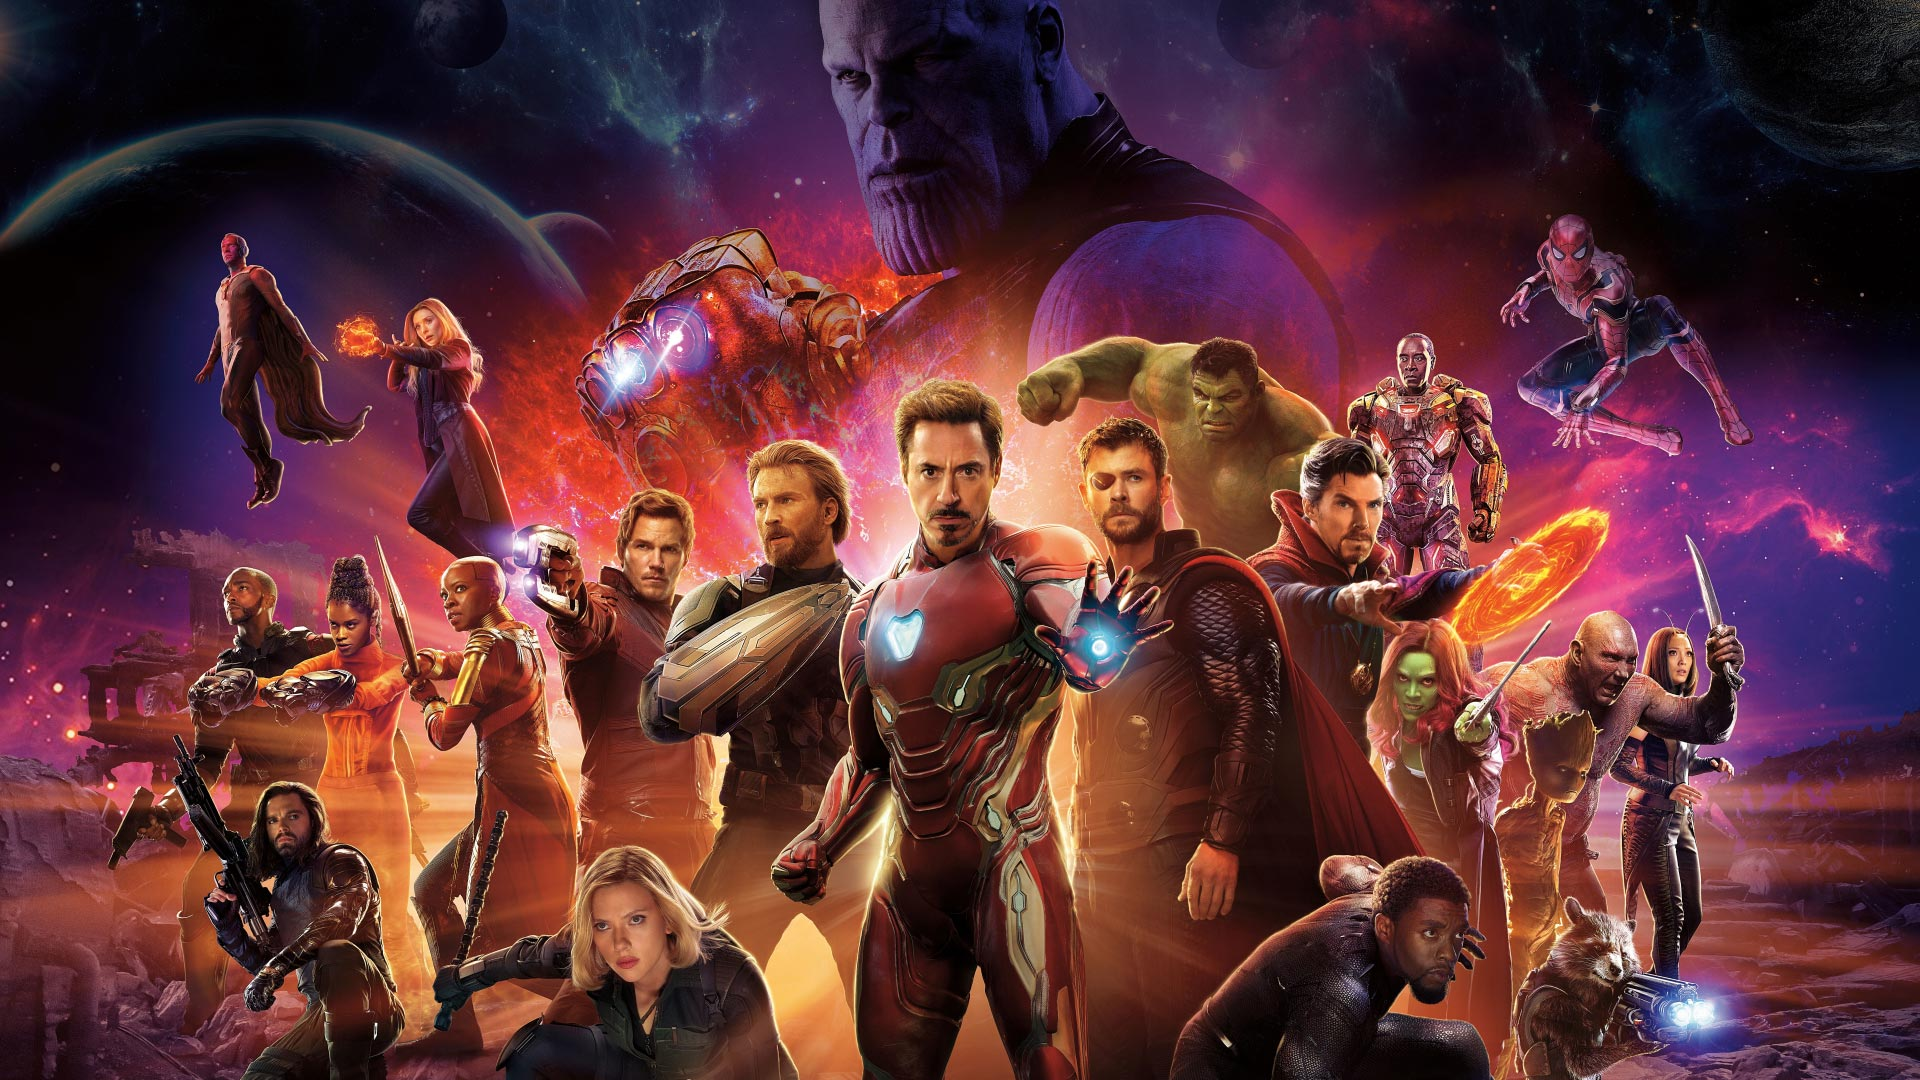 Avengers: Infinity War 2018 Full Movie Online